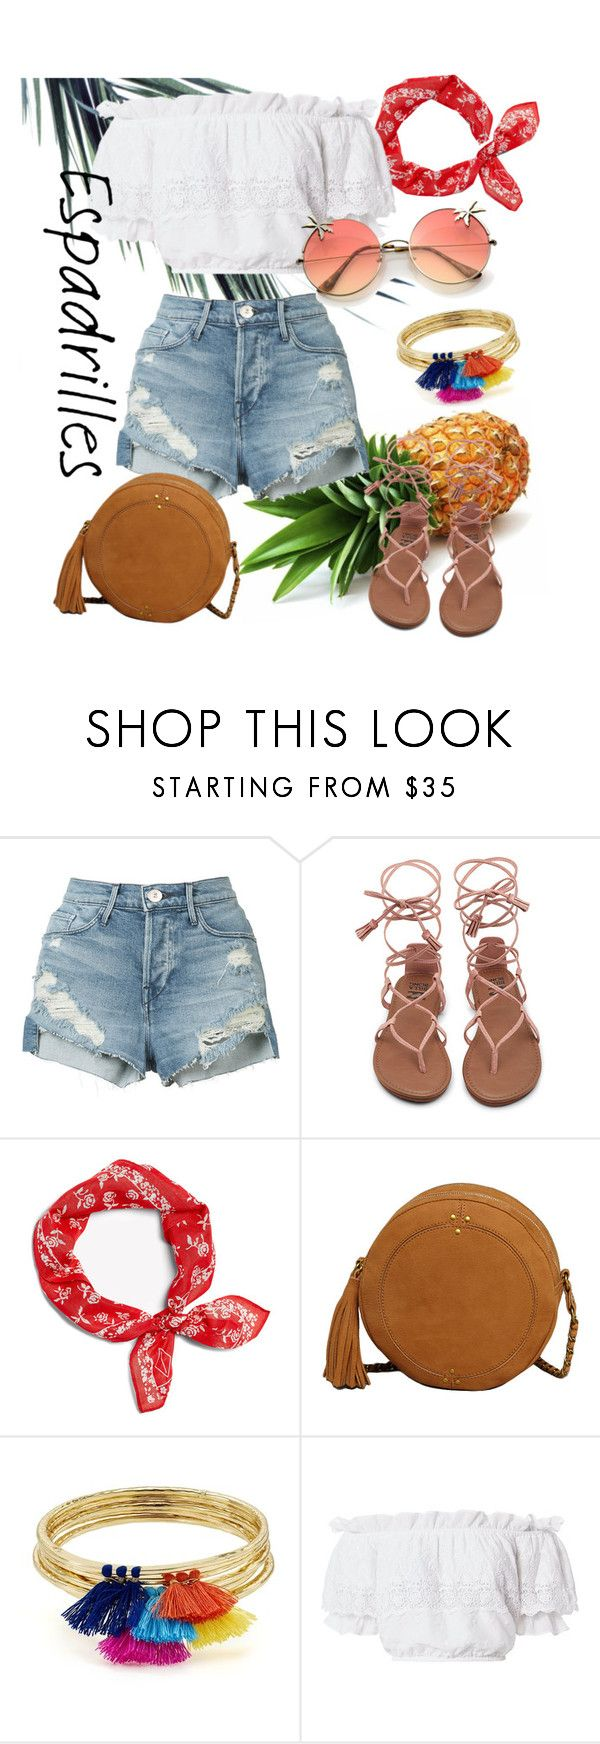 """""""Summer vibe +outfit#105+"""" by alifia-fae on Polyvore featuring 3x1, Aqua and LoveShackFancy"""